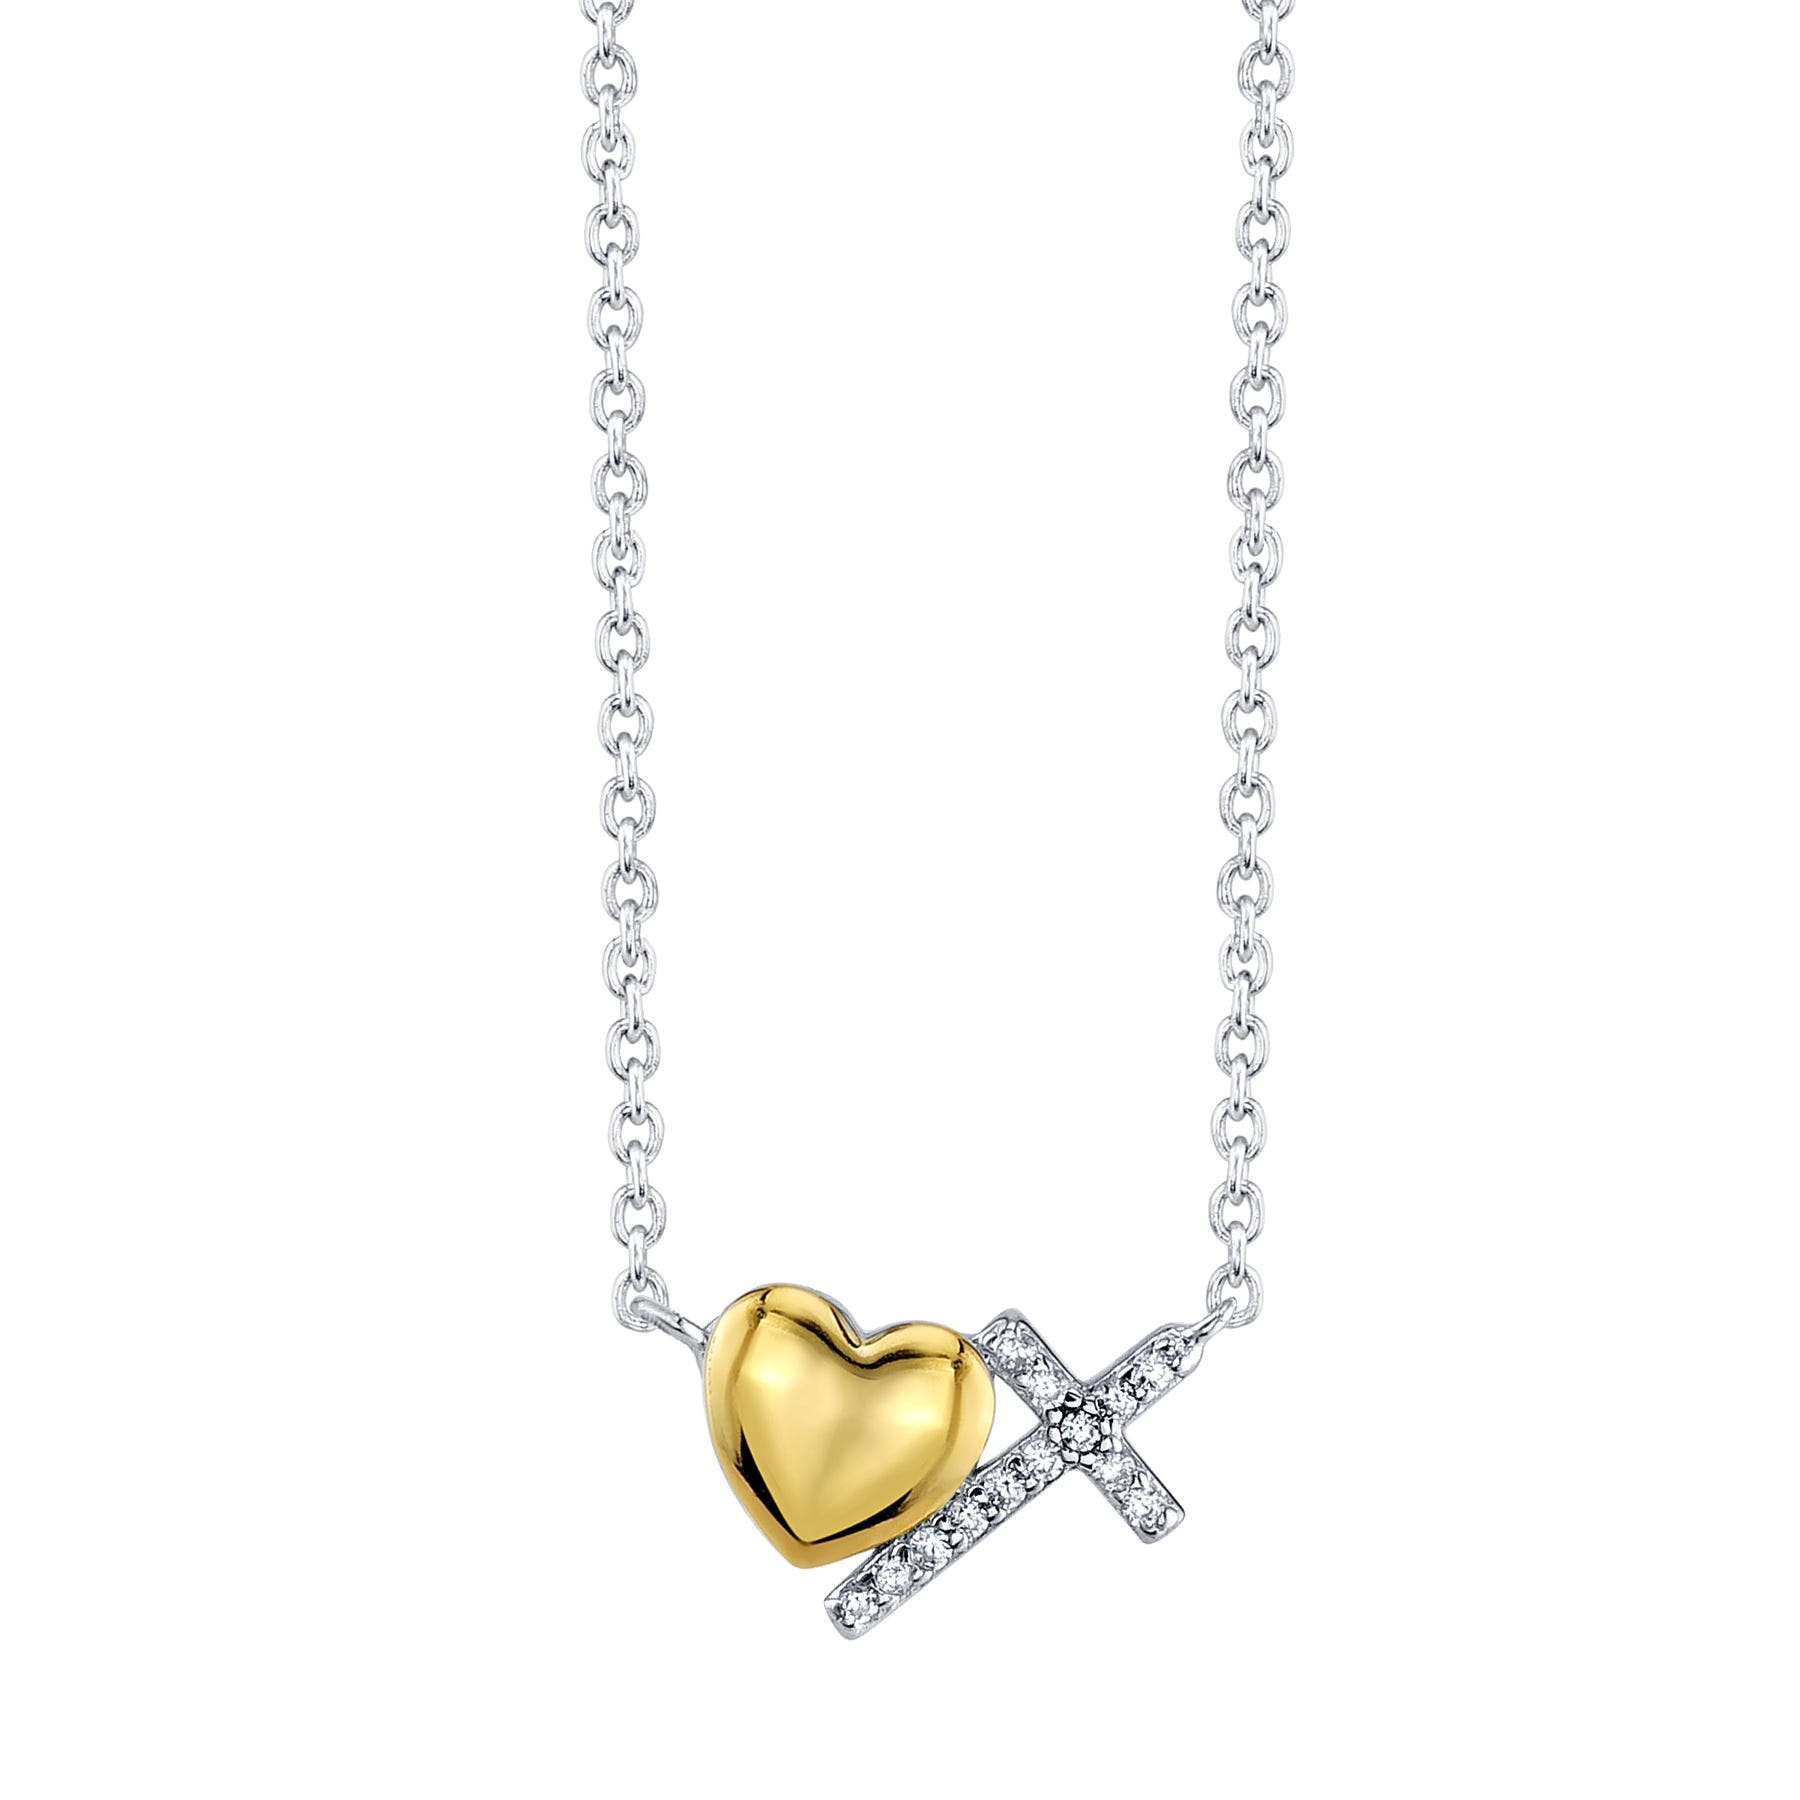 Cross and Heart Dainty Necklace with Crystal in Silver Plated Two-Tone